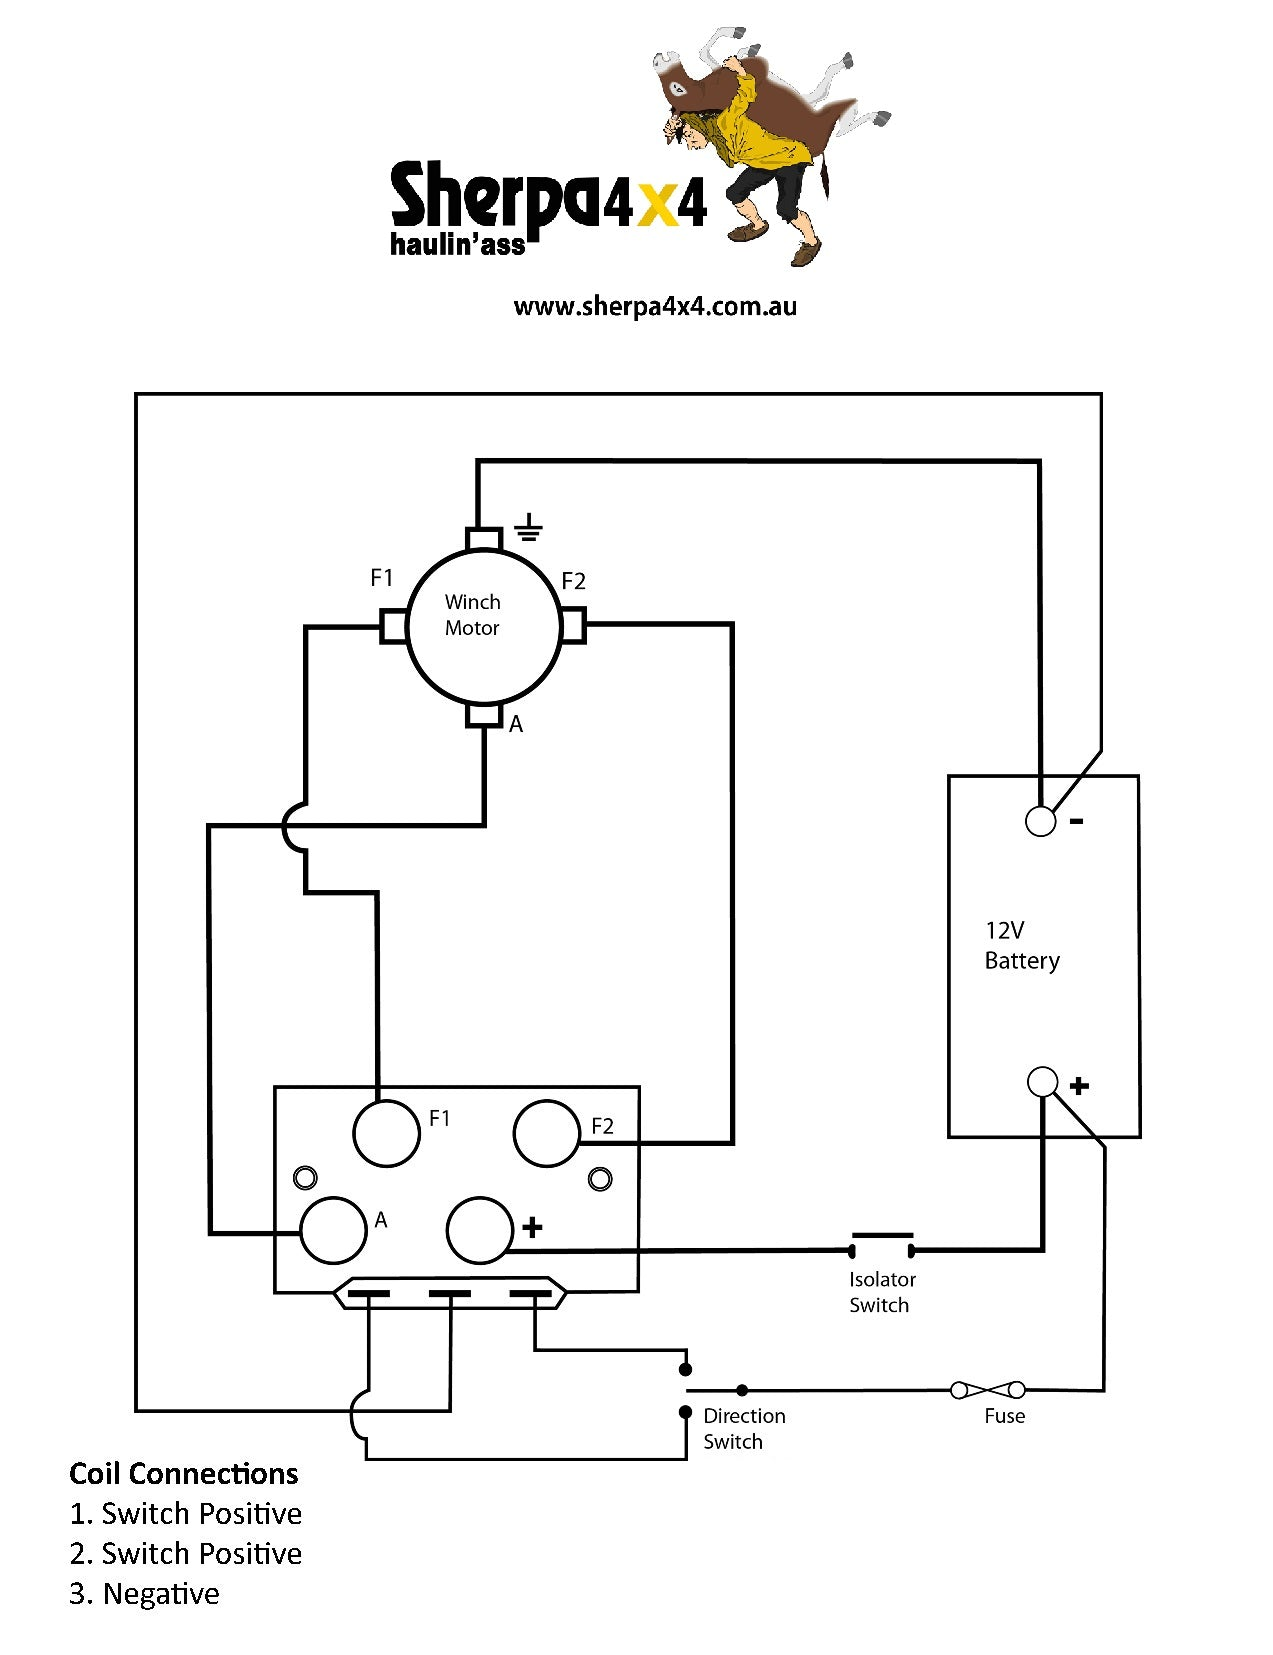 Sherpa_4x4_Winch_Wiring_Diagram?12240005484949772751 albright winch solenoid dc88p scintex australia warn winch wiring diagram solenoid at bayanpartner.co